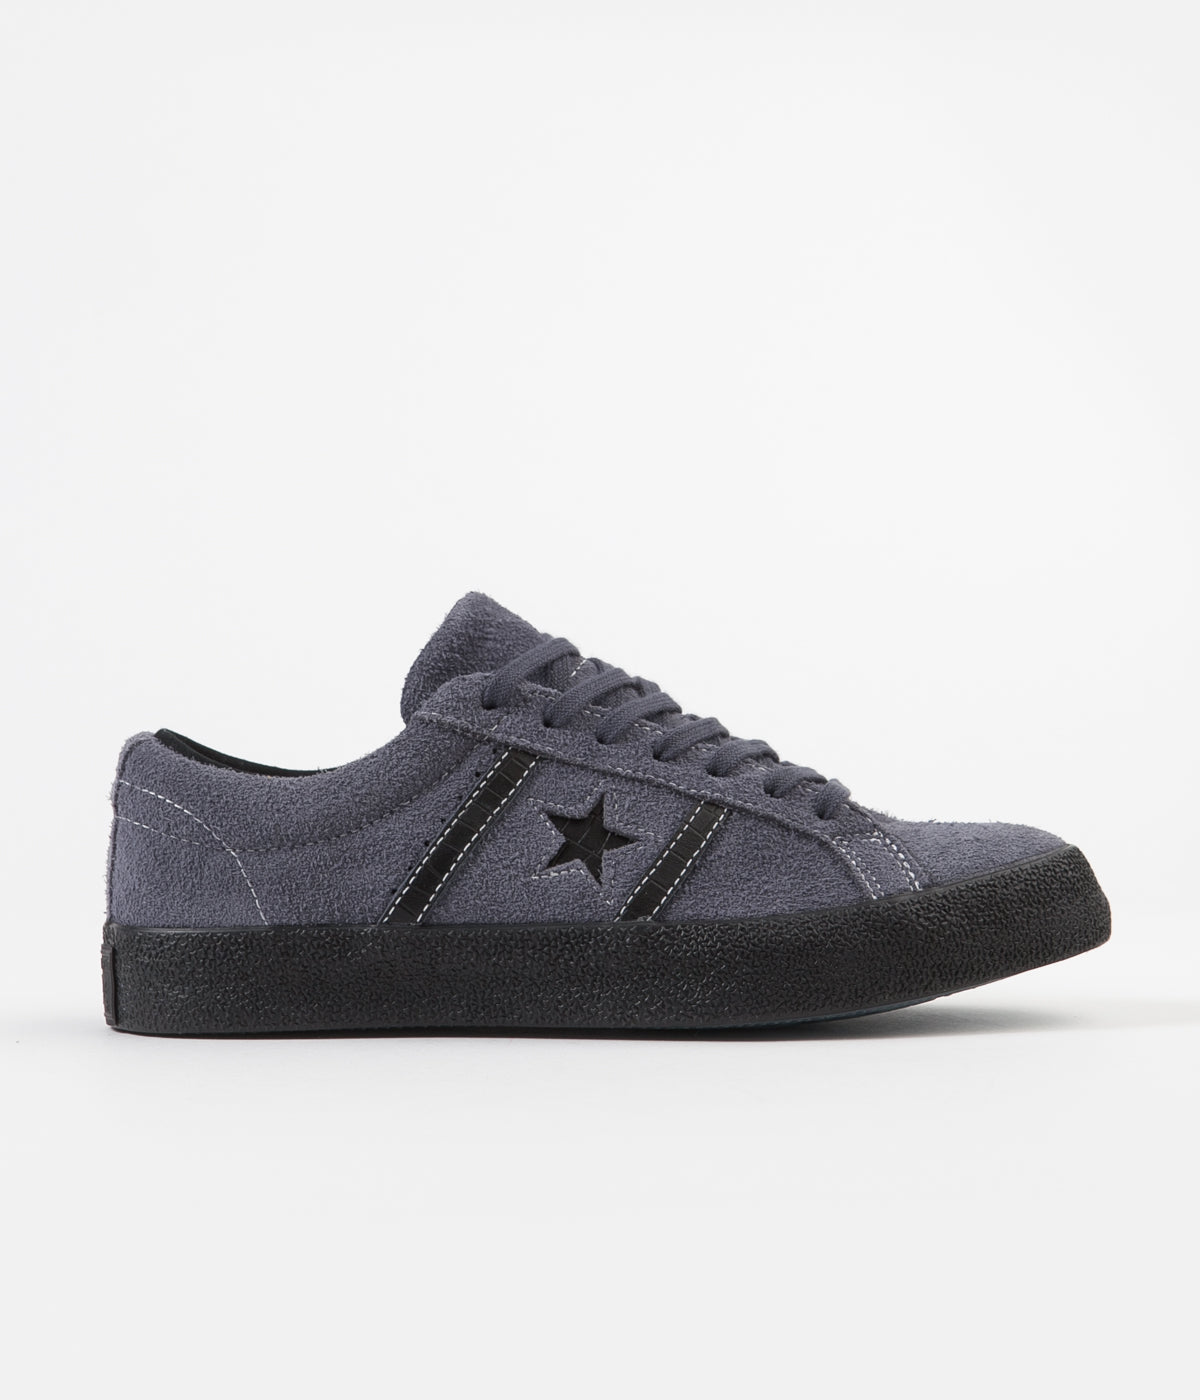 Converse One Star Academy SB Ox Shoes - Sharkskin / Black